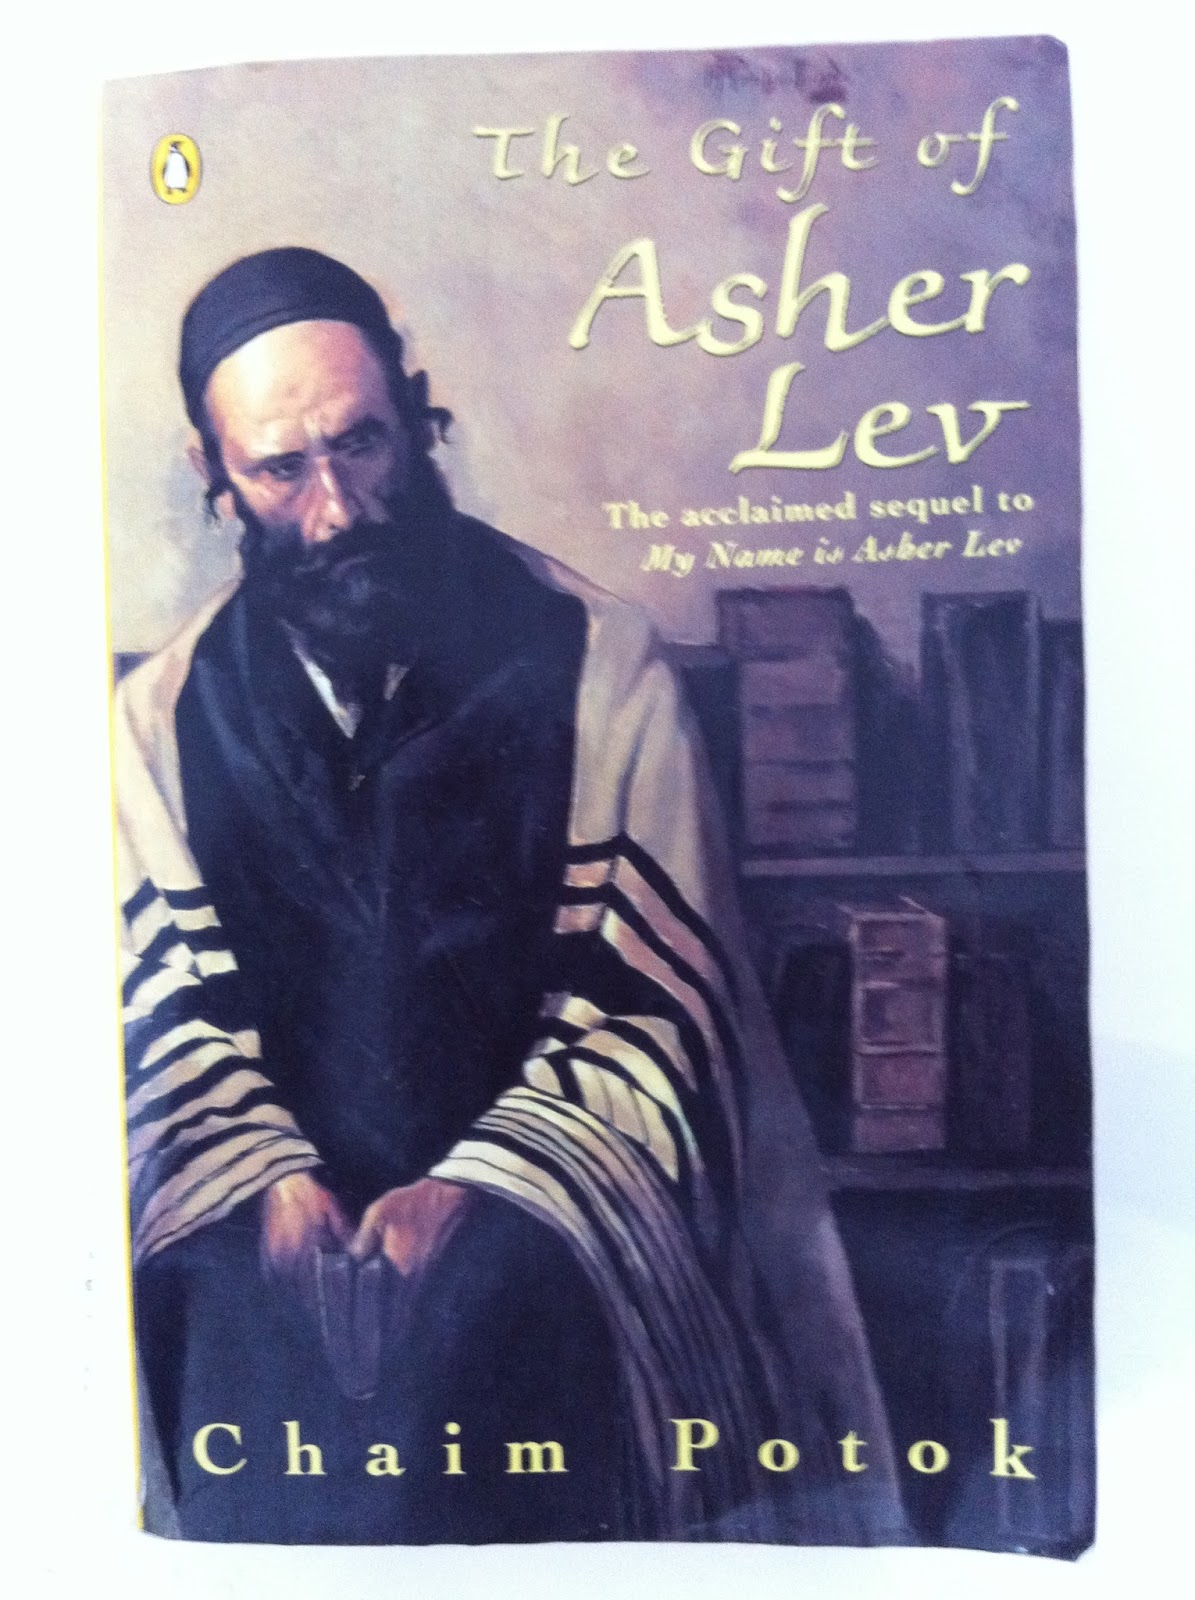 a review of chaim potoks novel my name is asher lev He recreated the painting the brooklyn crucifixion, which the character asher lev painted in the book my name is asher lev legacy chaim potok has had a considerable influence on jewish.